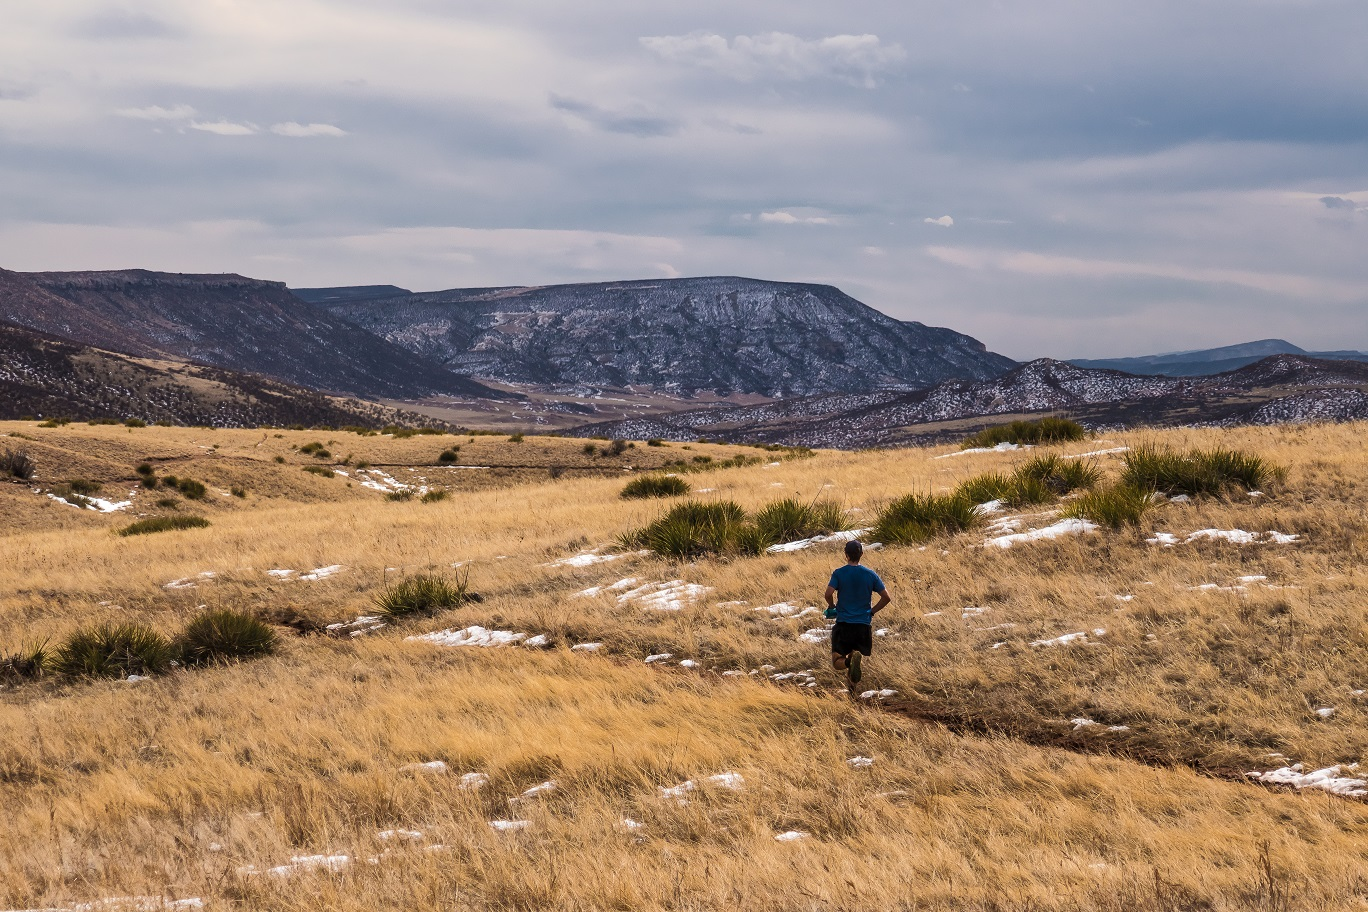 Image 10: trail runner at, red mountain trail